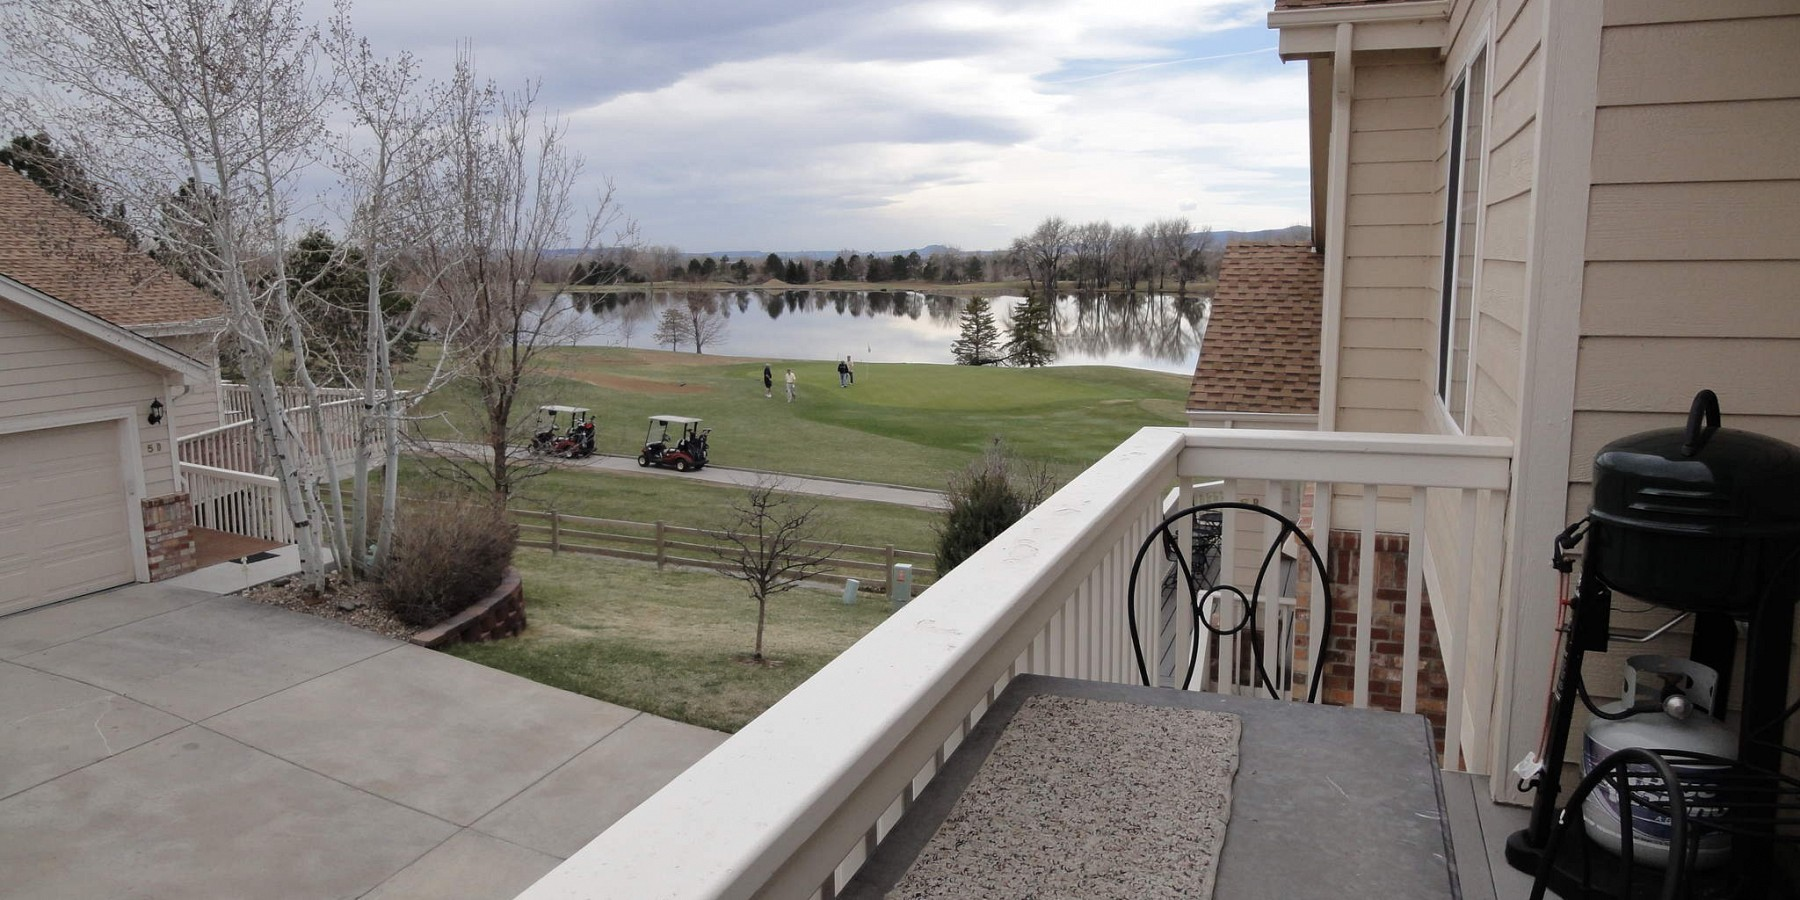 7700 West Grant Ranch Blvd #6A, Littleton, CO 80123